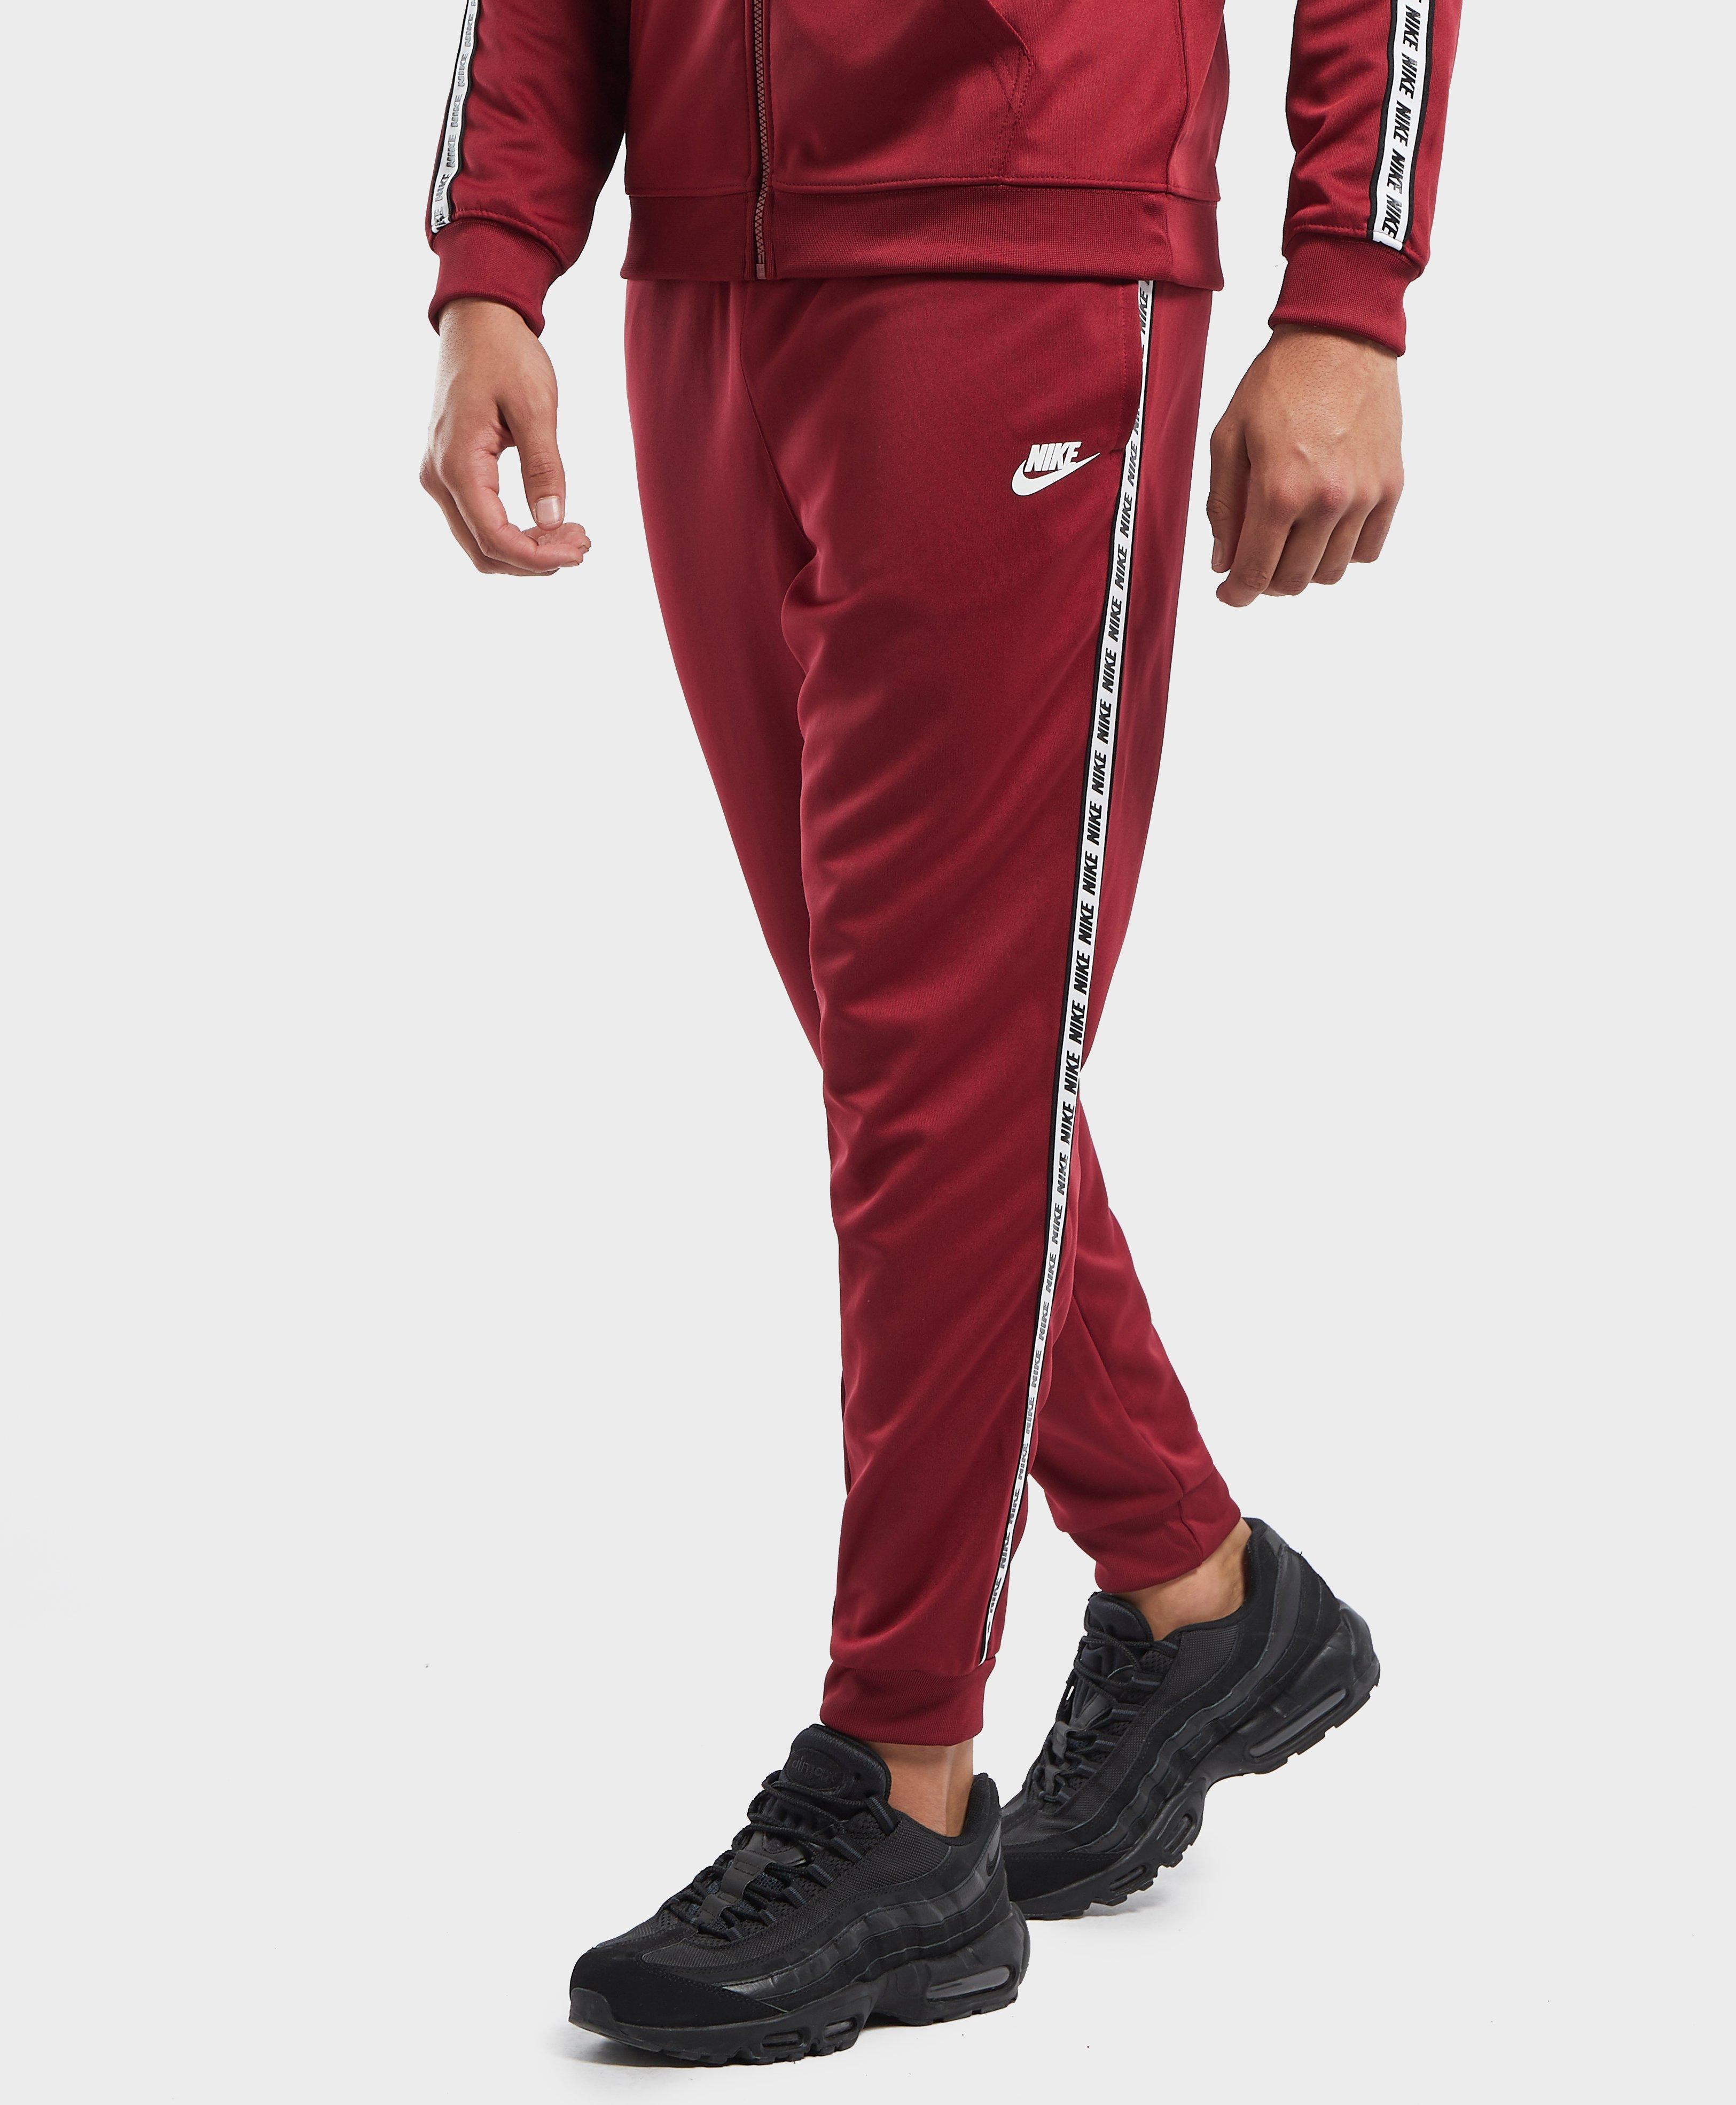 In Red Gel Track Nike Cuffed Tape Pants Men For Lyst UxXPqw1T